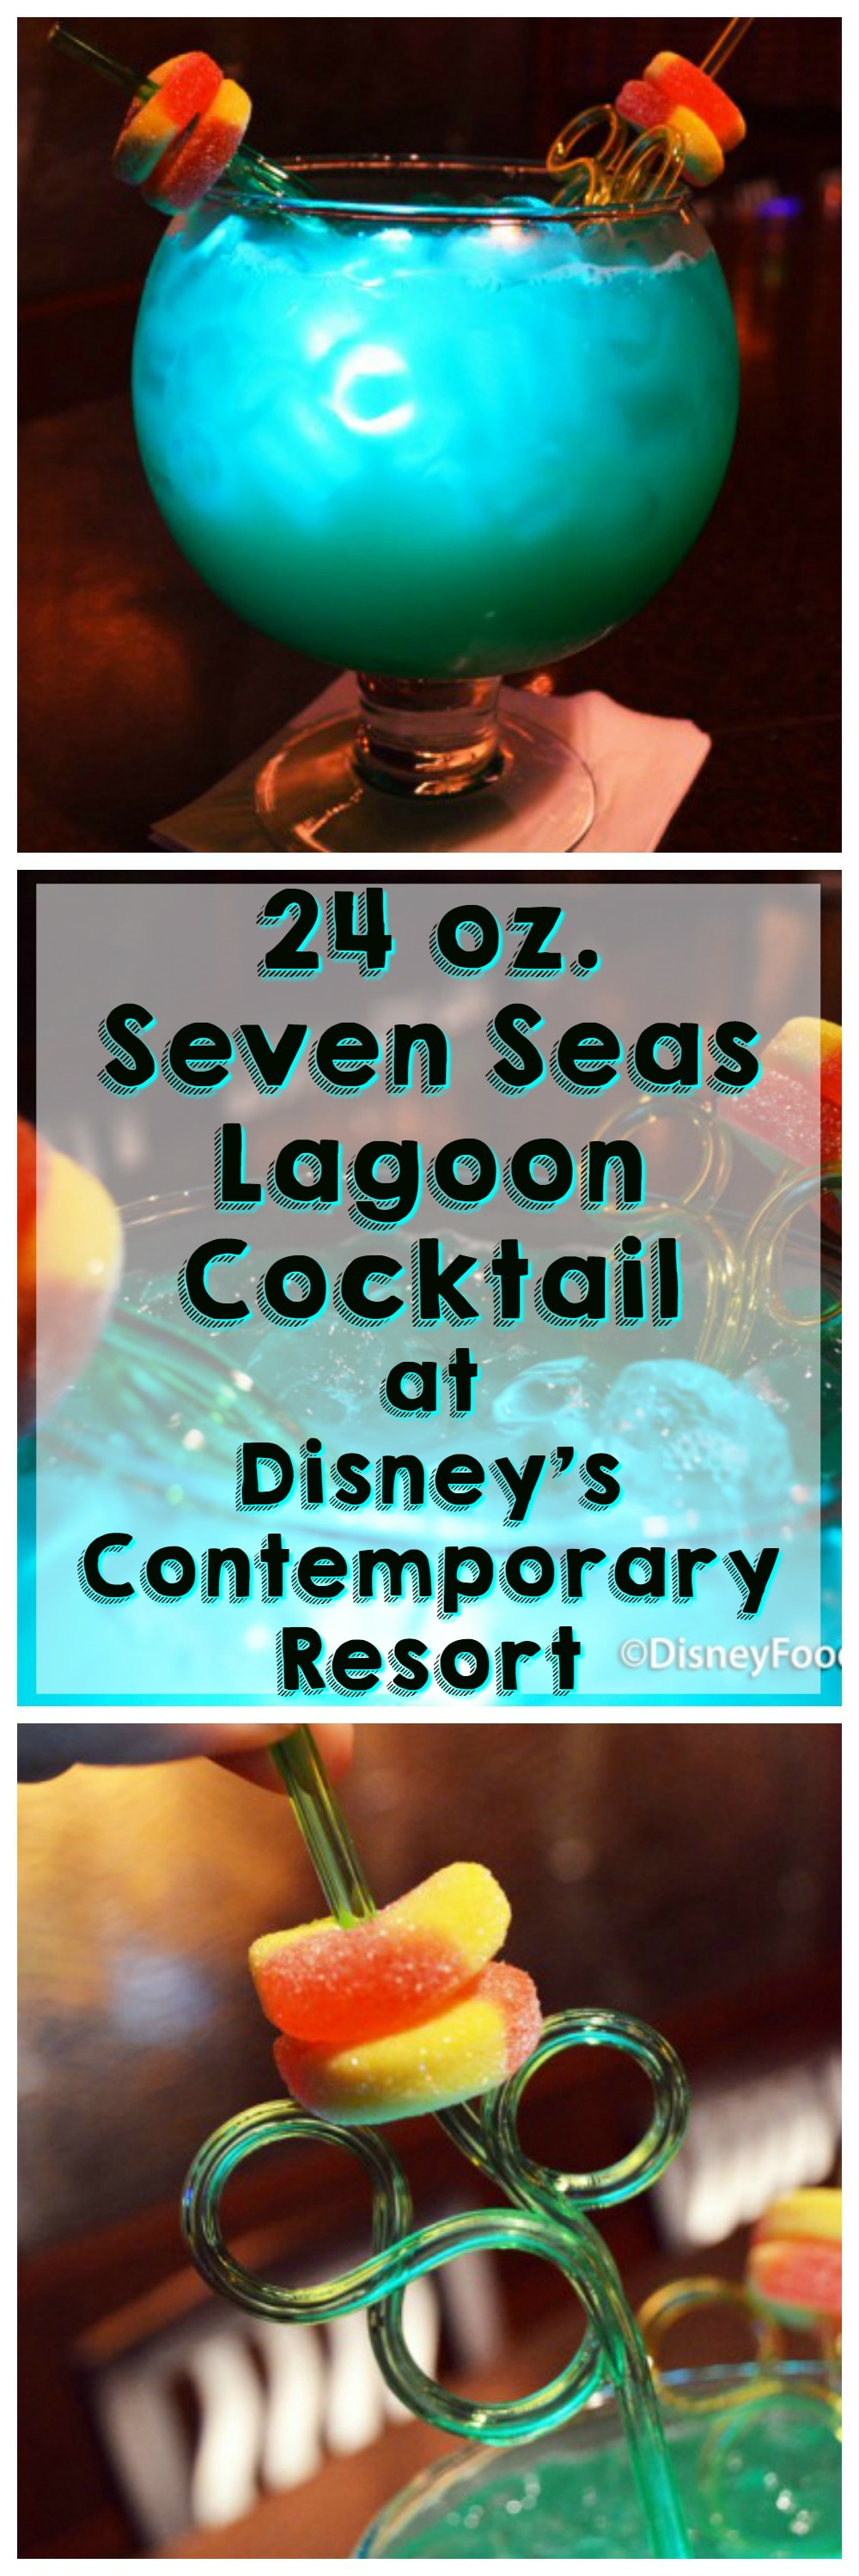 Read our review of the 24 oz. Seven Seas Lagoon Cocktail at Disney's Contemporary Resort!